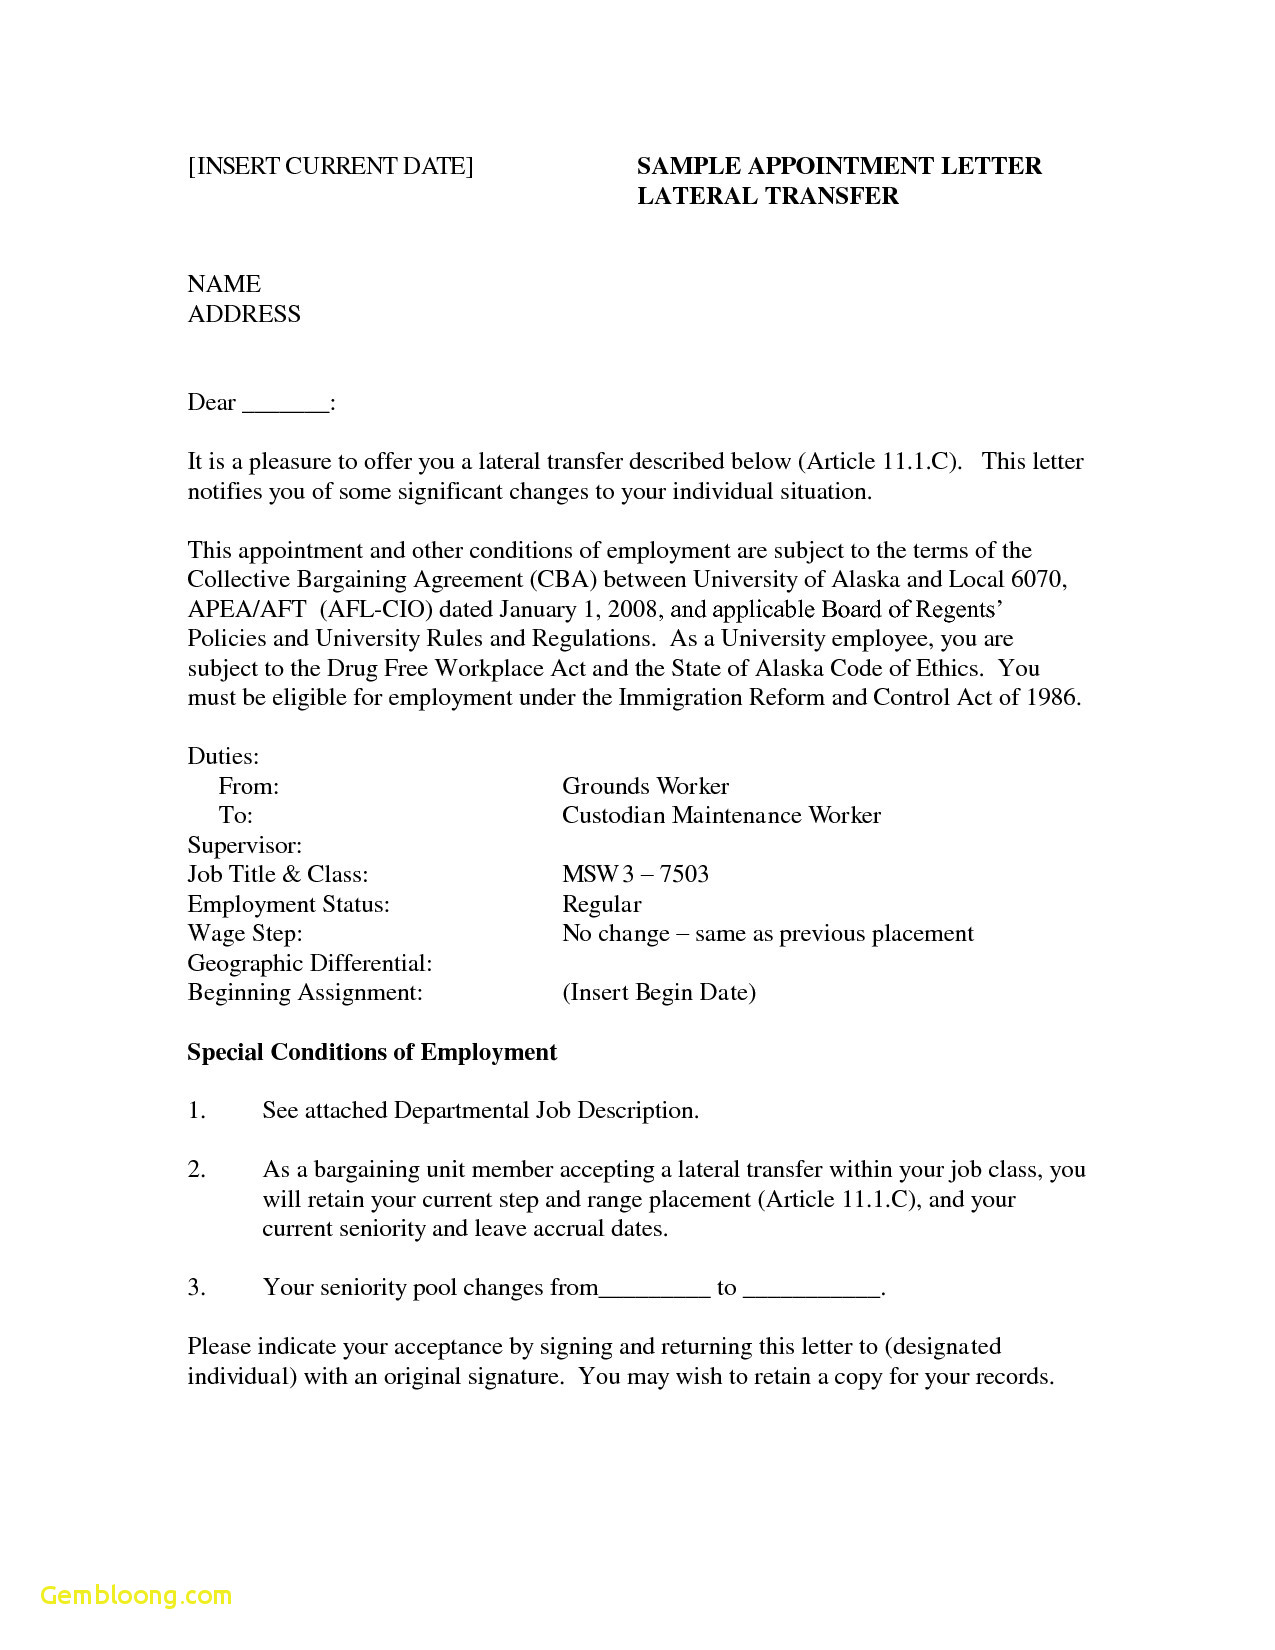 relocation cover letter template free Collection-Teaching Resume Cover Letter Free Download Cover Letter Template Word 2014 Fresh Relocation Cover Letters Od 5-a